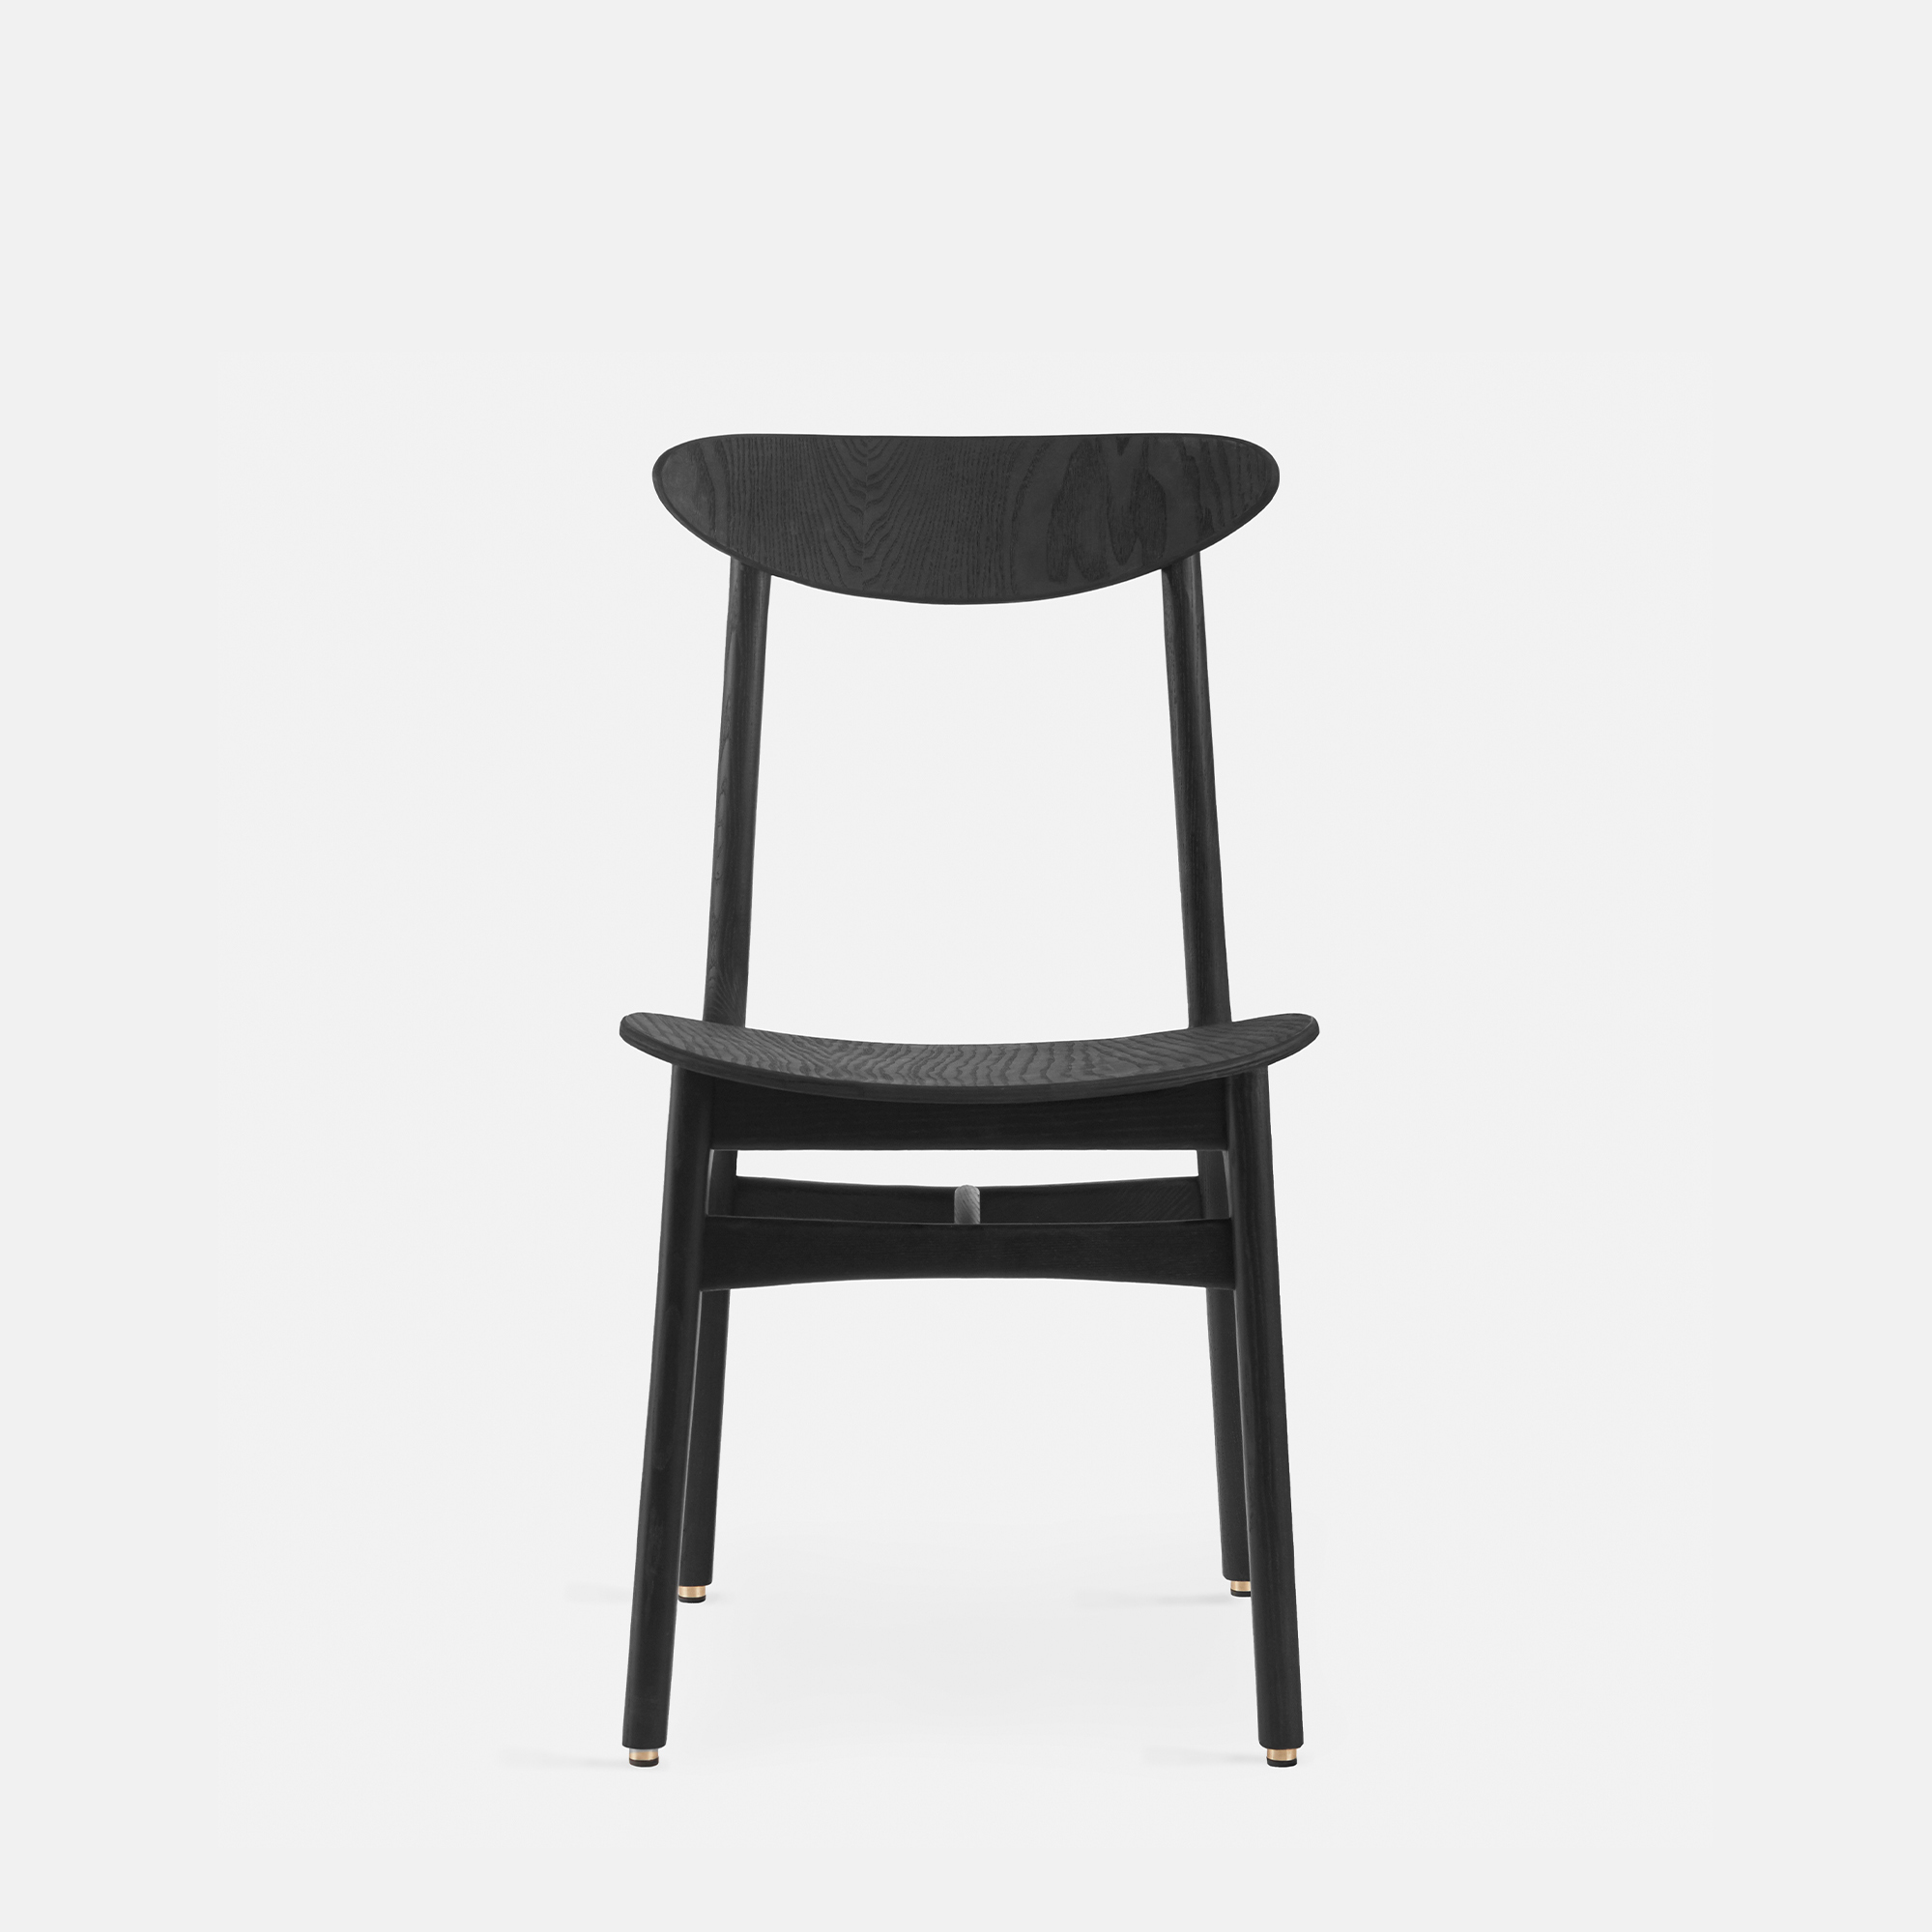 366-Concept-200-190-Chair-Timber-W04-front